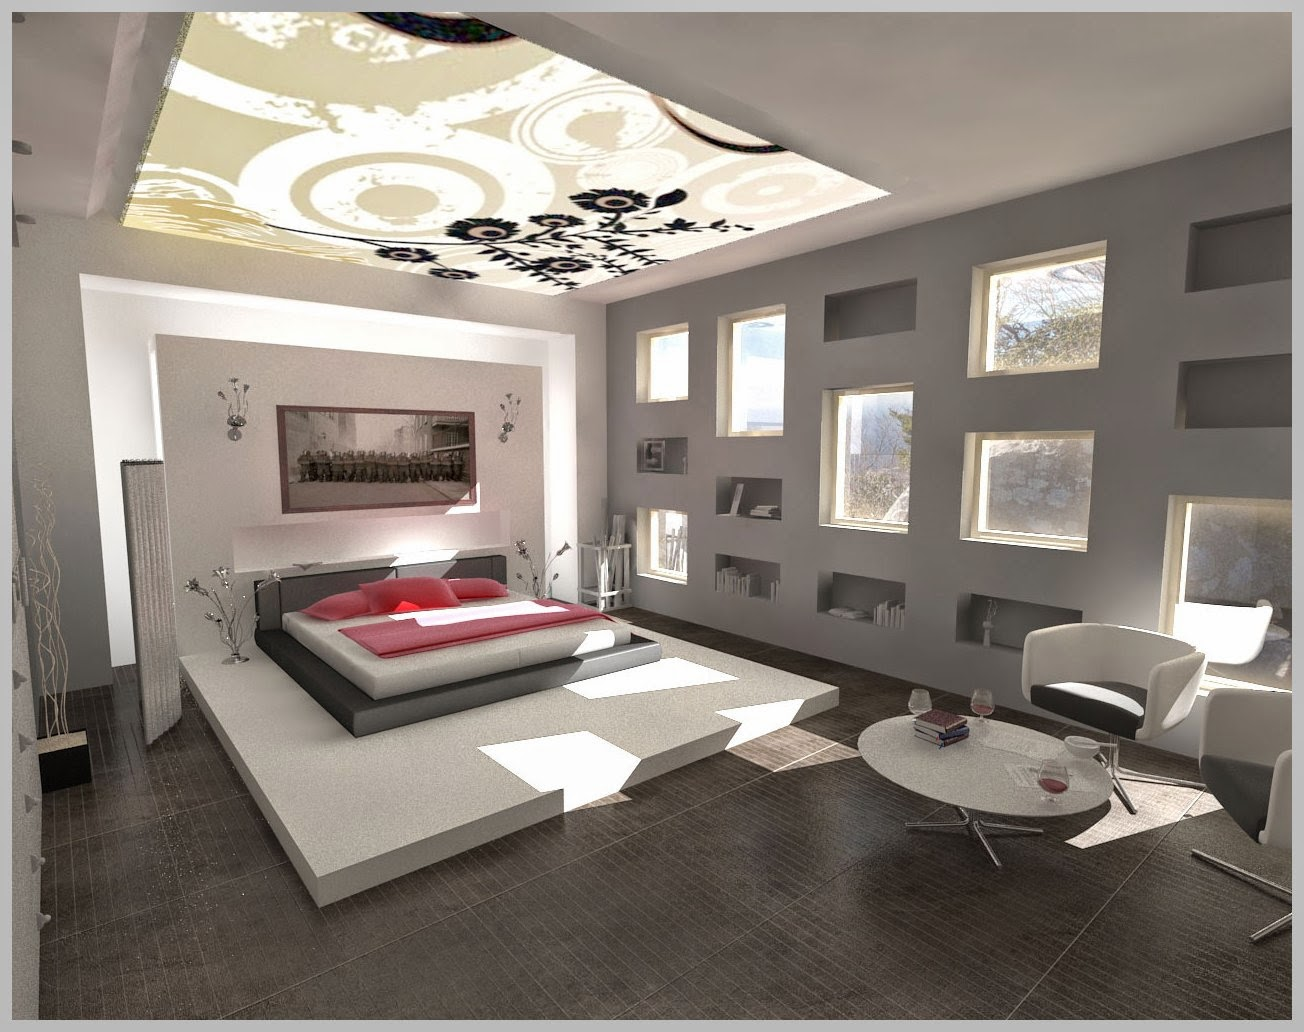 Alimustang home design future aroda va interior designers for Famous interior designs